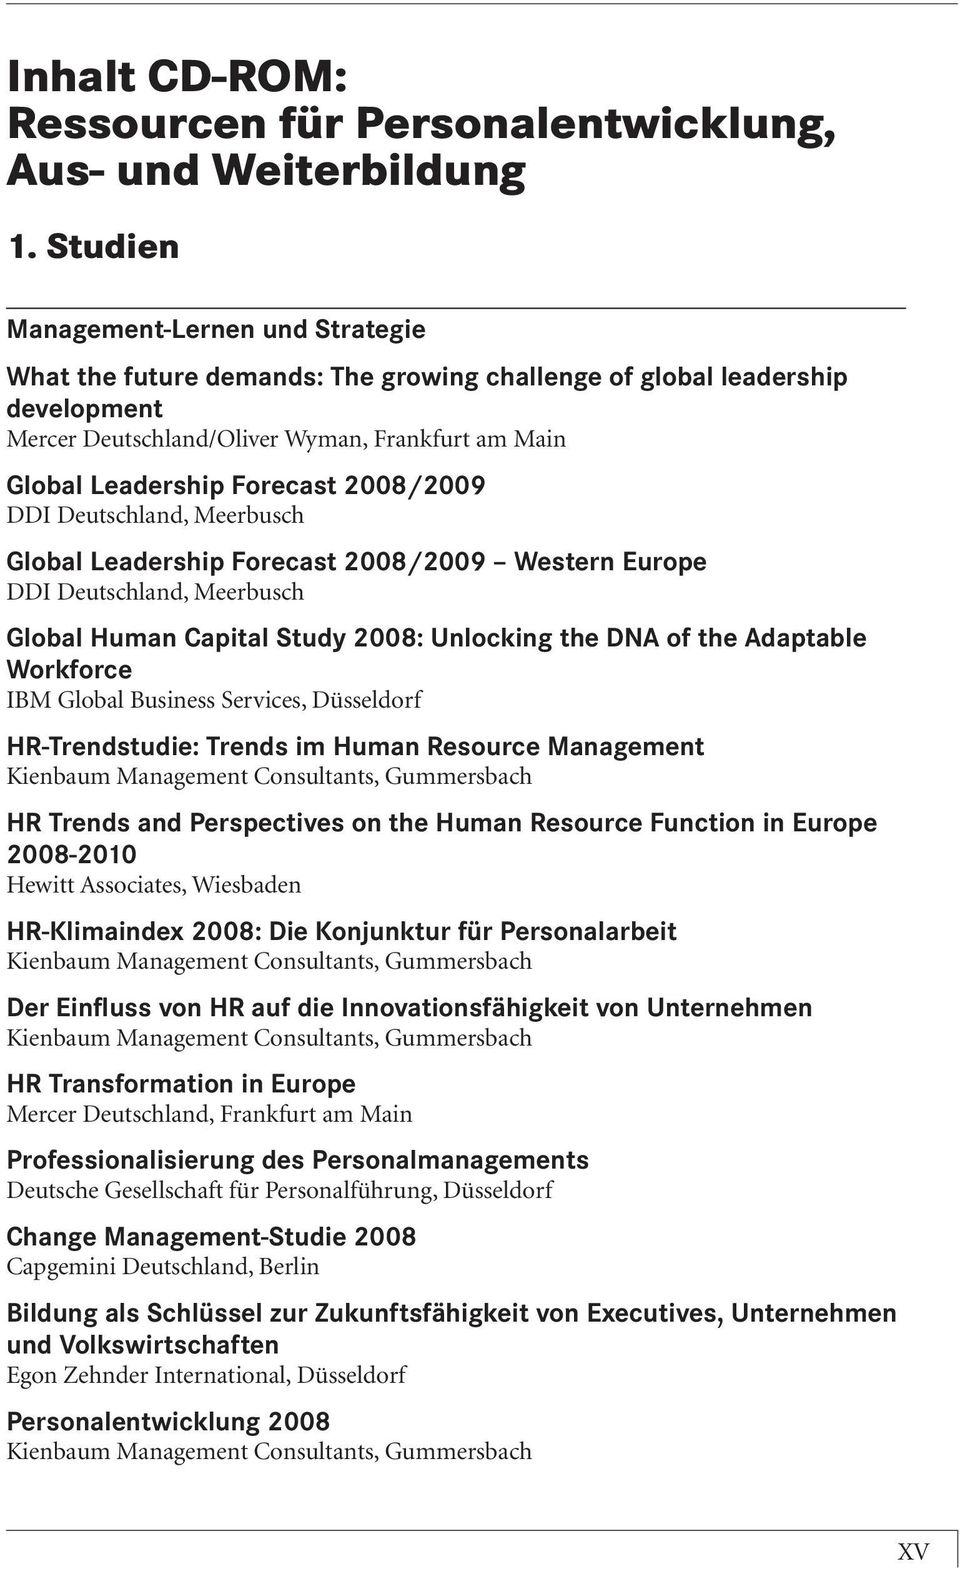 2008/2009 DDI Deutschland, Meerbusch Global Leadership Forecast 2008/2009 Western Europe DDI Deutschland, Meerbusch Global Human Capital Study 2008: Unlocking the DNA of the Adaptable Workforce IBM